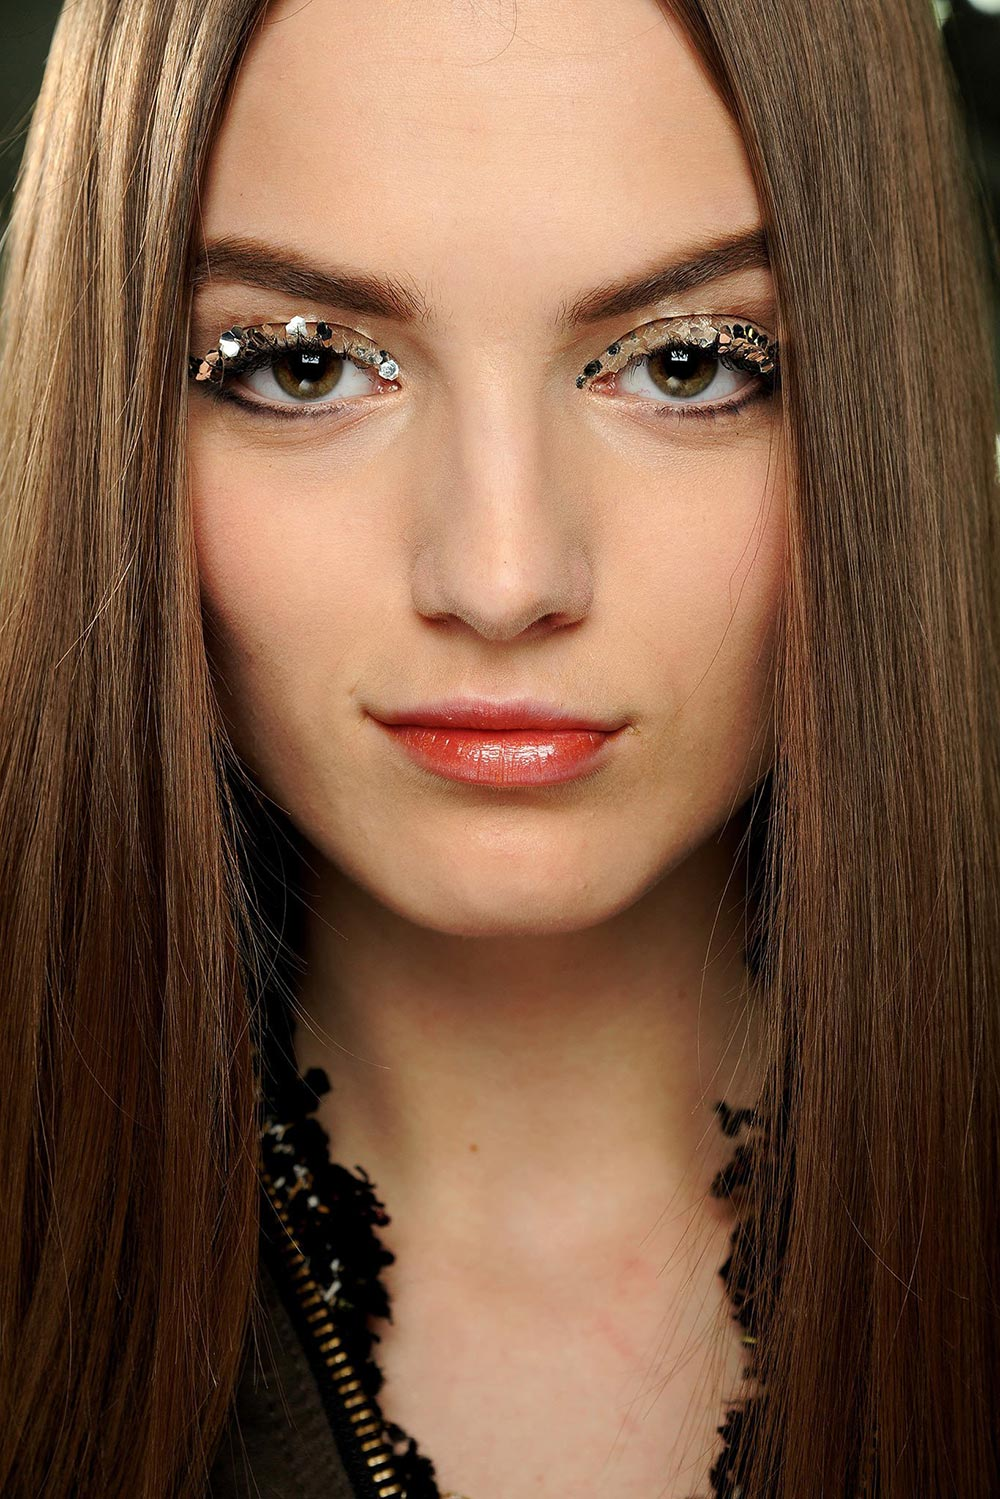 Runway Beauty: 3D Silver Eye Makeup At Chanel Fall 2013